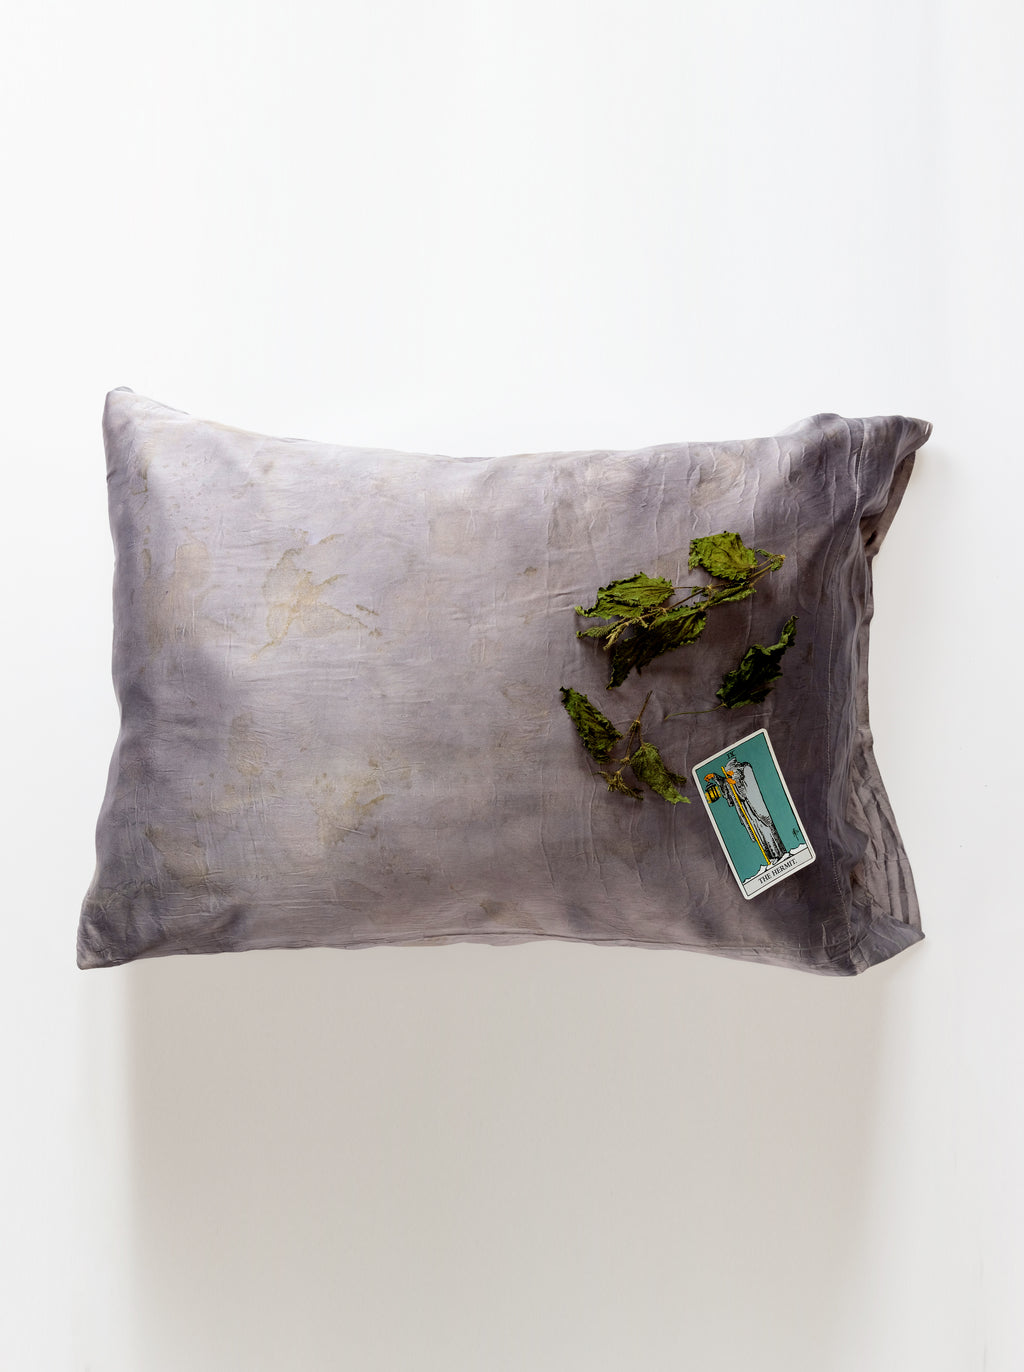 Nettle-dyed Pillowcase